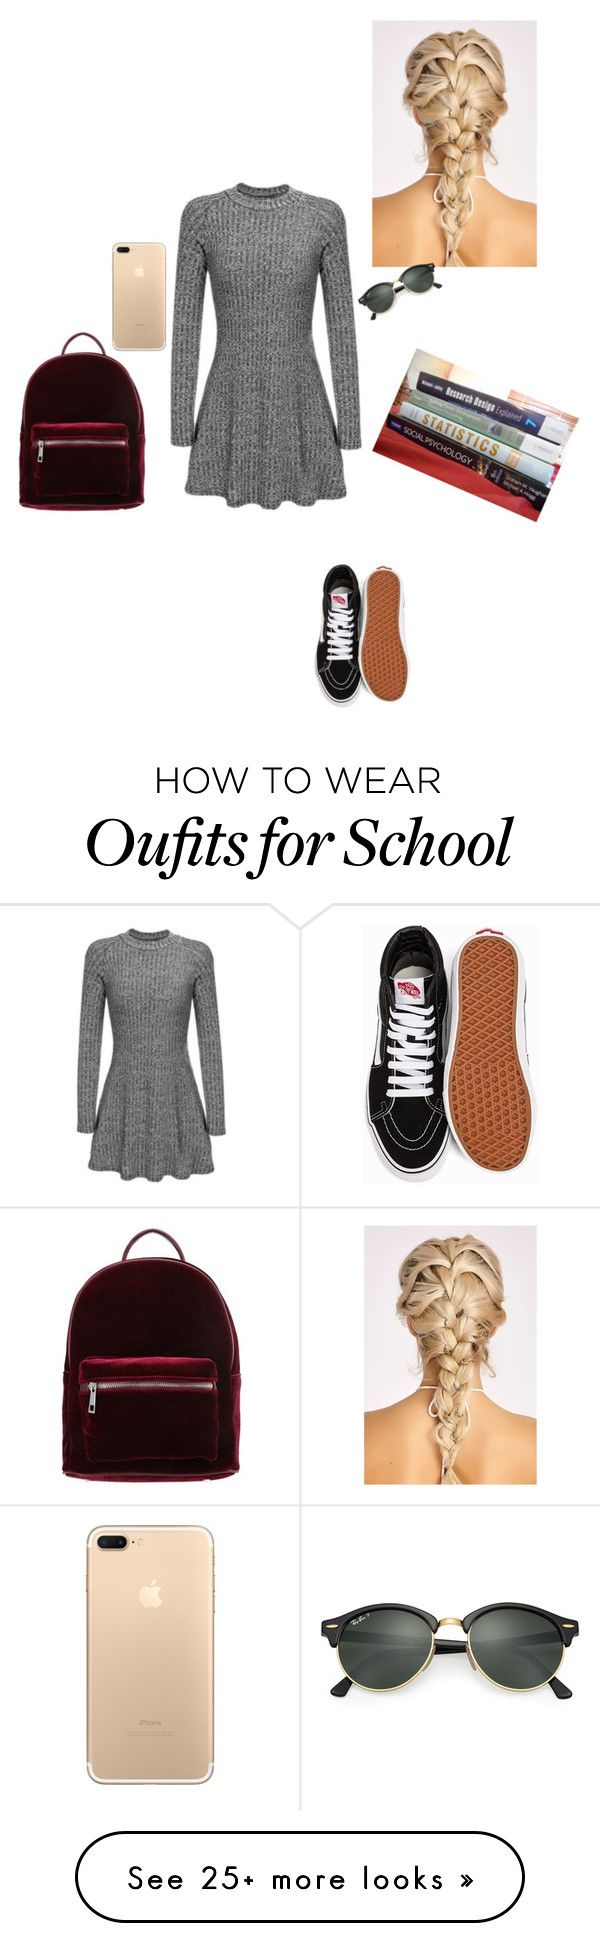 """""""Casual school outfit"""" by sonialicetmartinez on Polyvore featuring Vans, even&odd and Ray-Ban"""